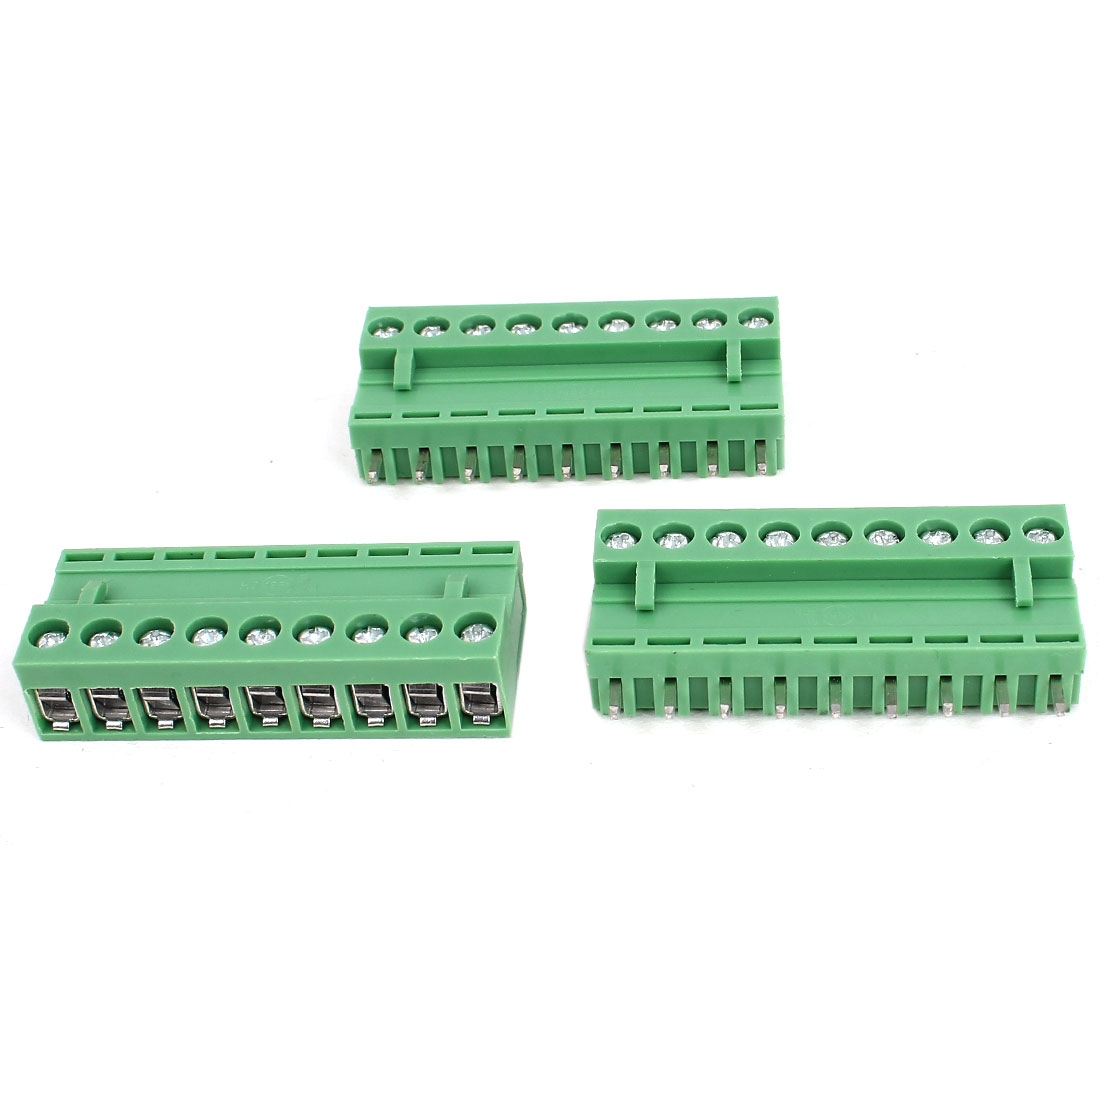 300V 10A 8 Pin Pole 5.08mm Spacing Pluggable Type PCB Screw Terminal Block Connector 3pcs Green